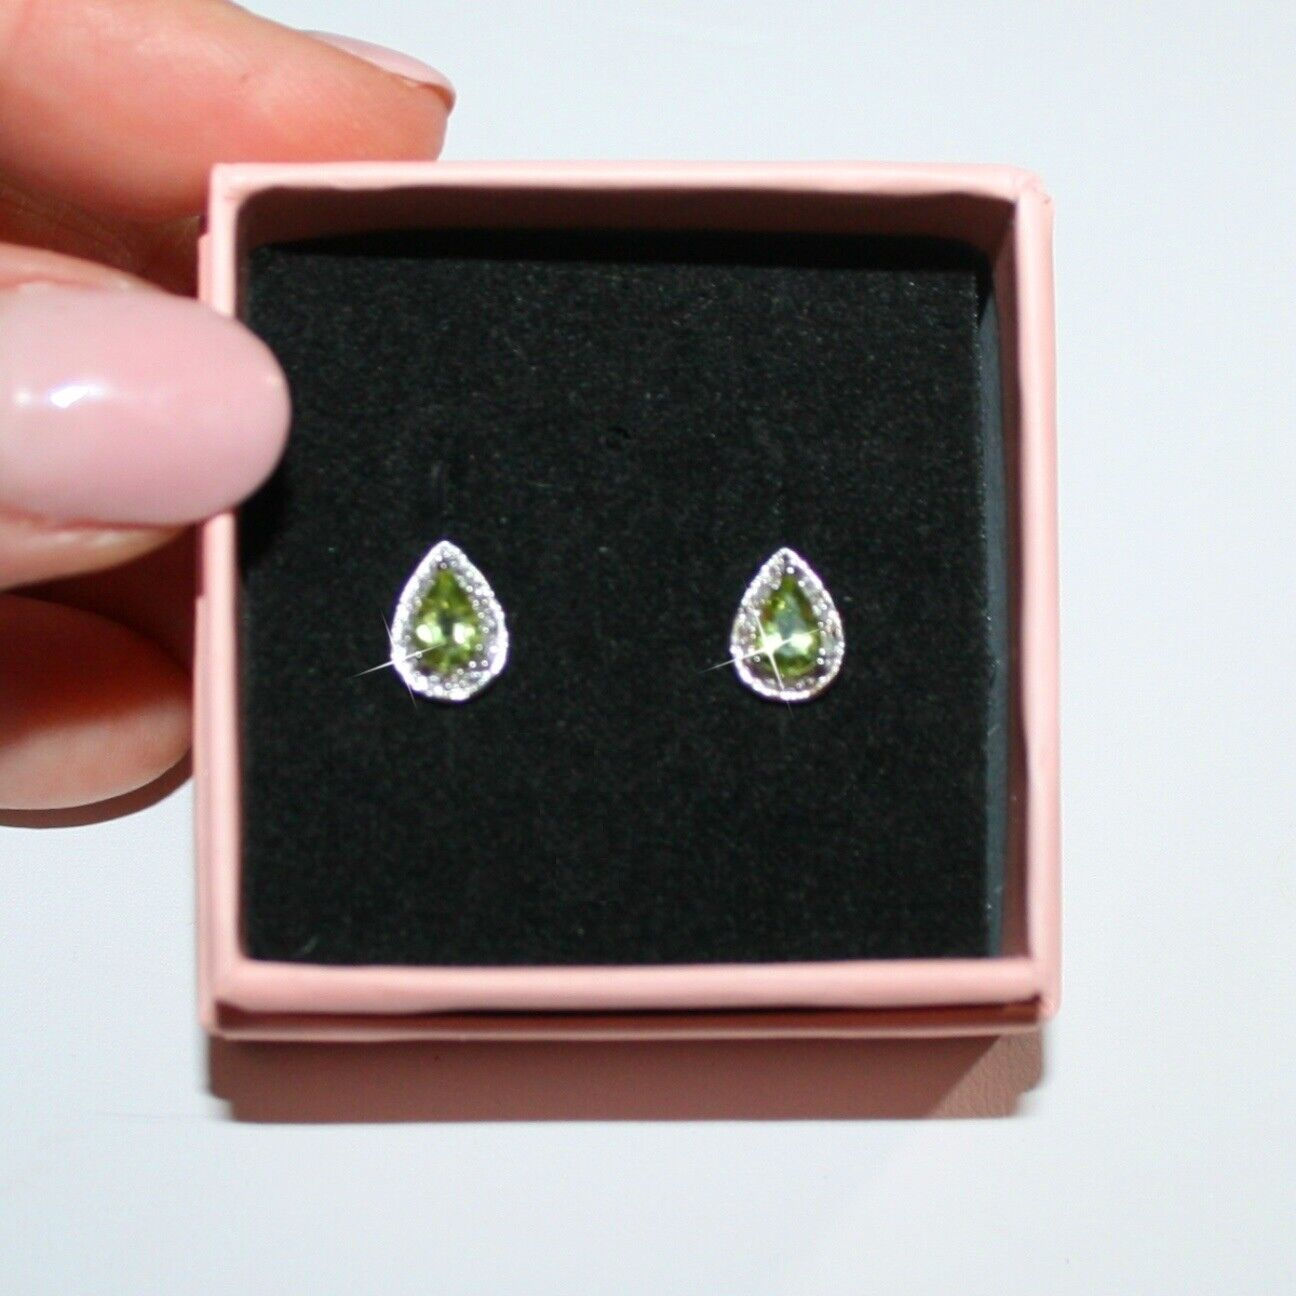 Pear Genuine Peridot with 20 Diamonds Stud Earrings White 14k gold over 925 SS